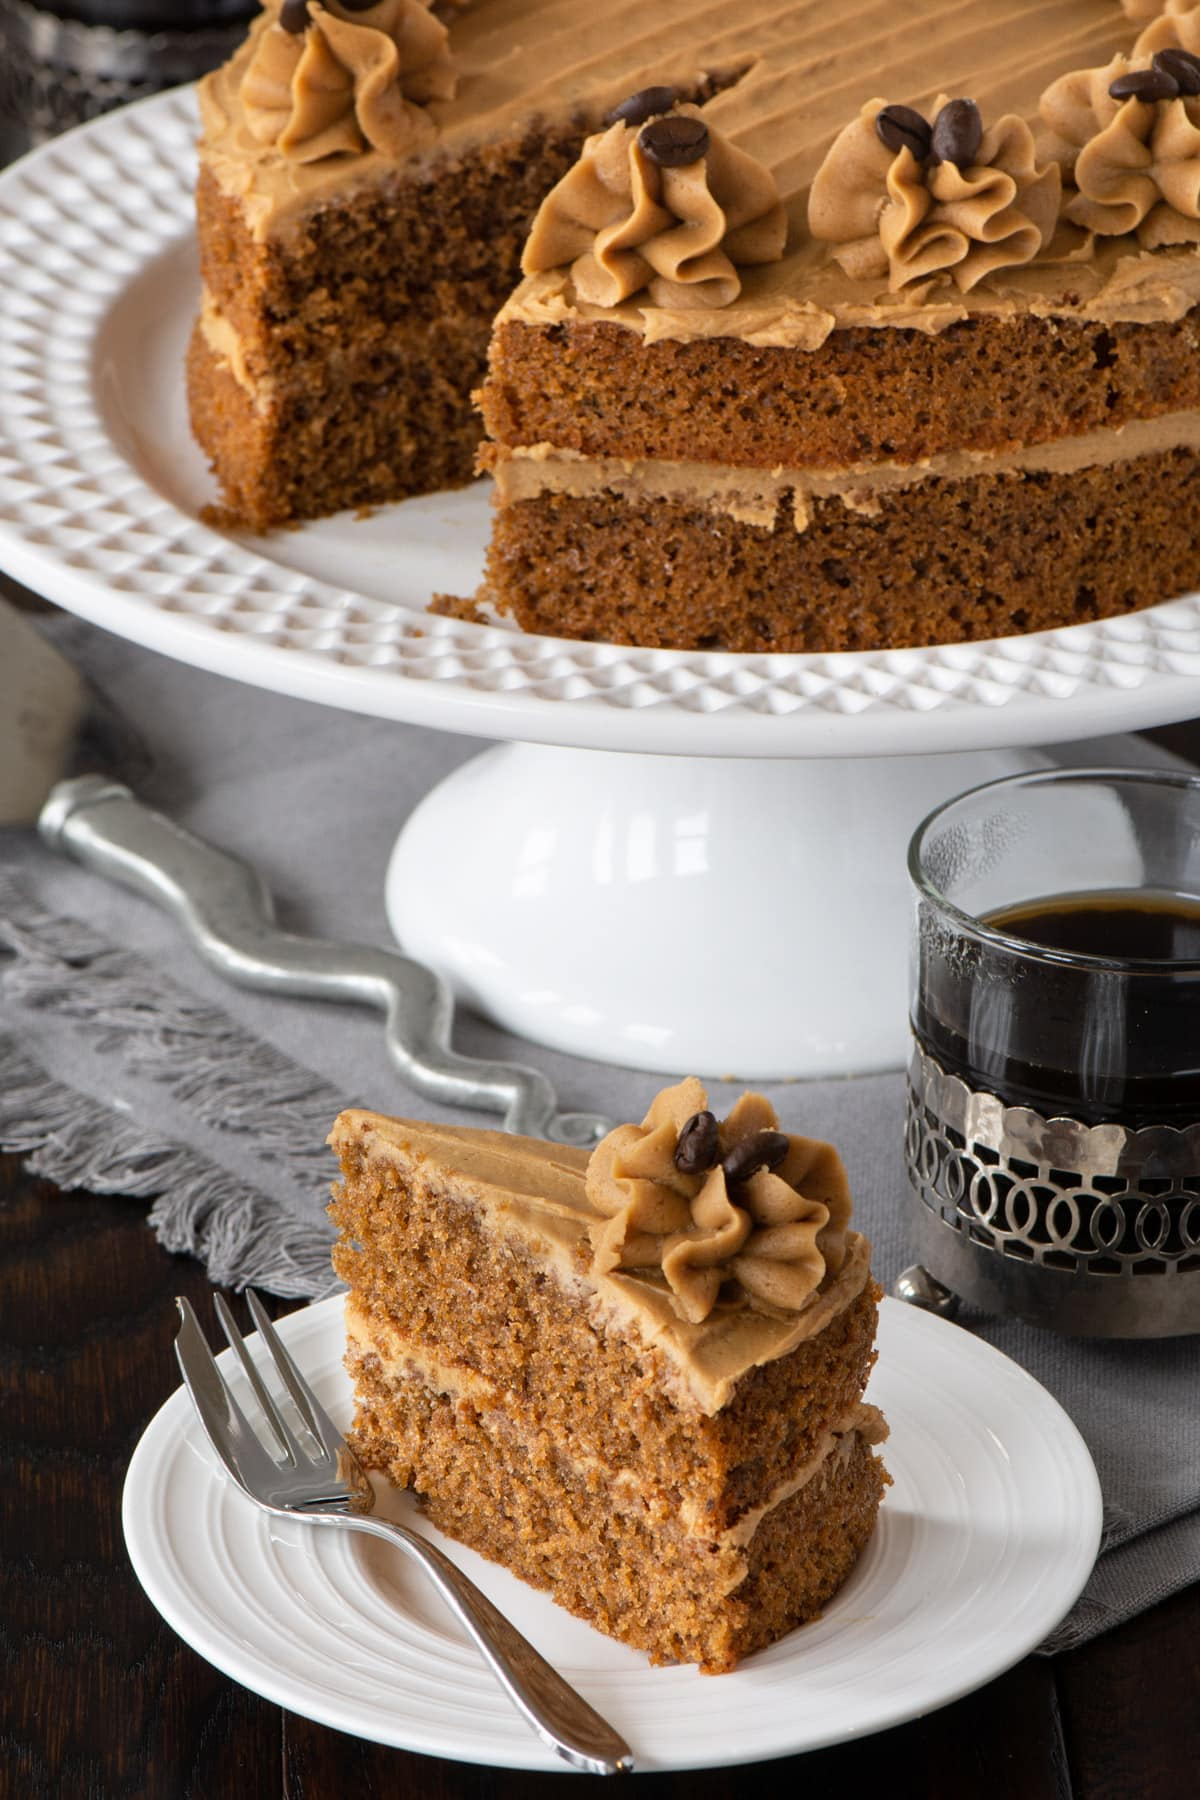 Easy Coffee Cake - A delicious all-in-one coffee sponge topped with smooth coffee buttercream. Simple to make and packed full of flavour. PLUS - Howto make this cake in any size of round, square or rectangular tin.